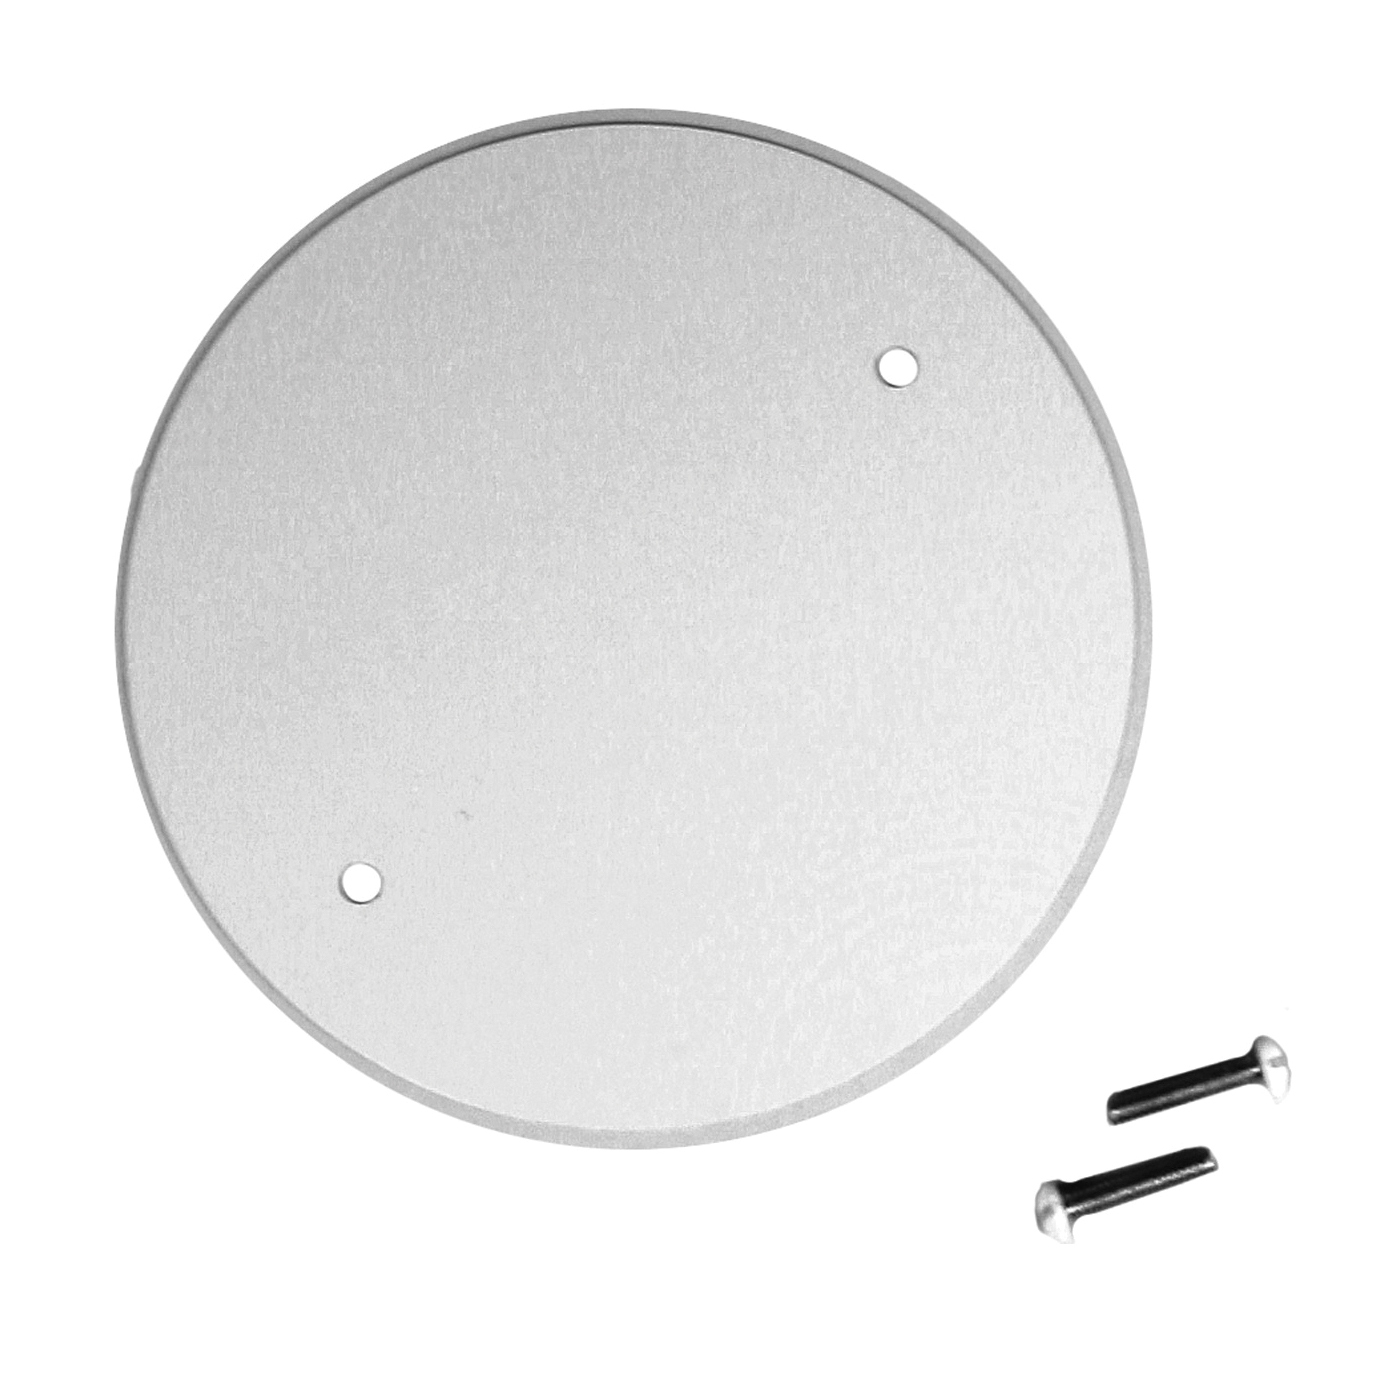 Picture of Jandorf 60220 Blank-Up Kit, Ceiling, White, For: Outlet Box After Removal of an Existing Fixture